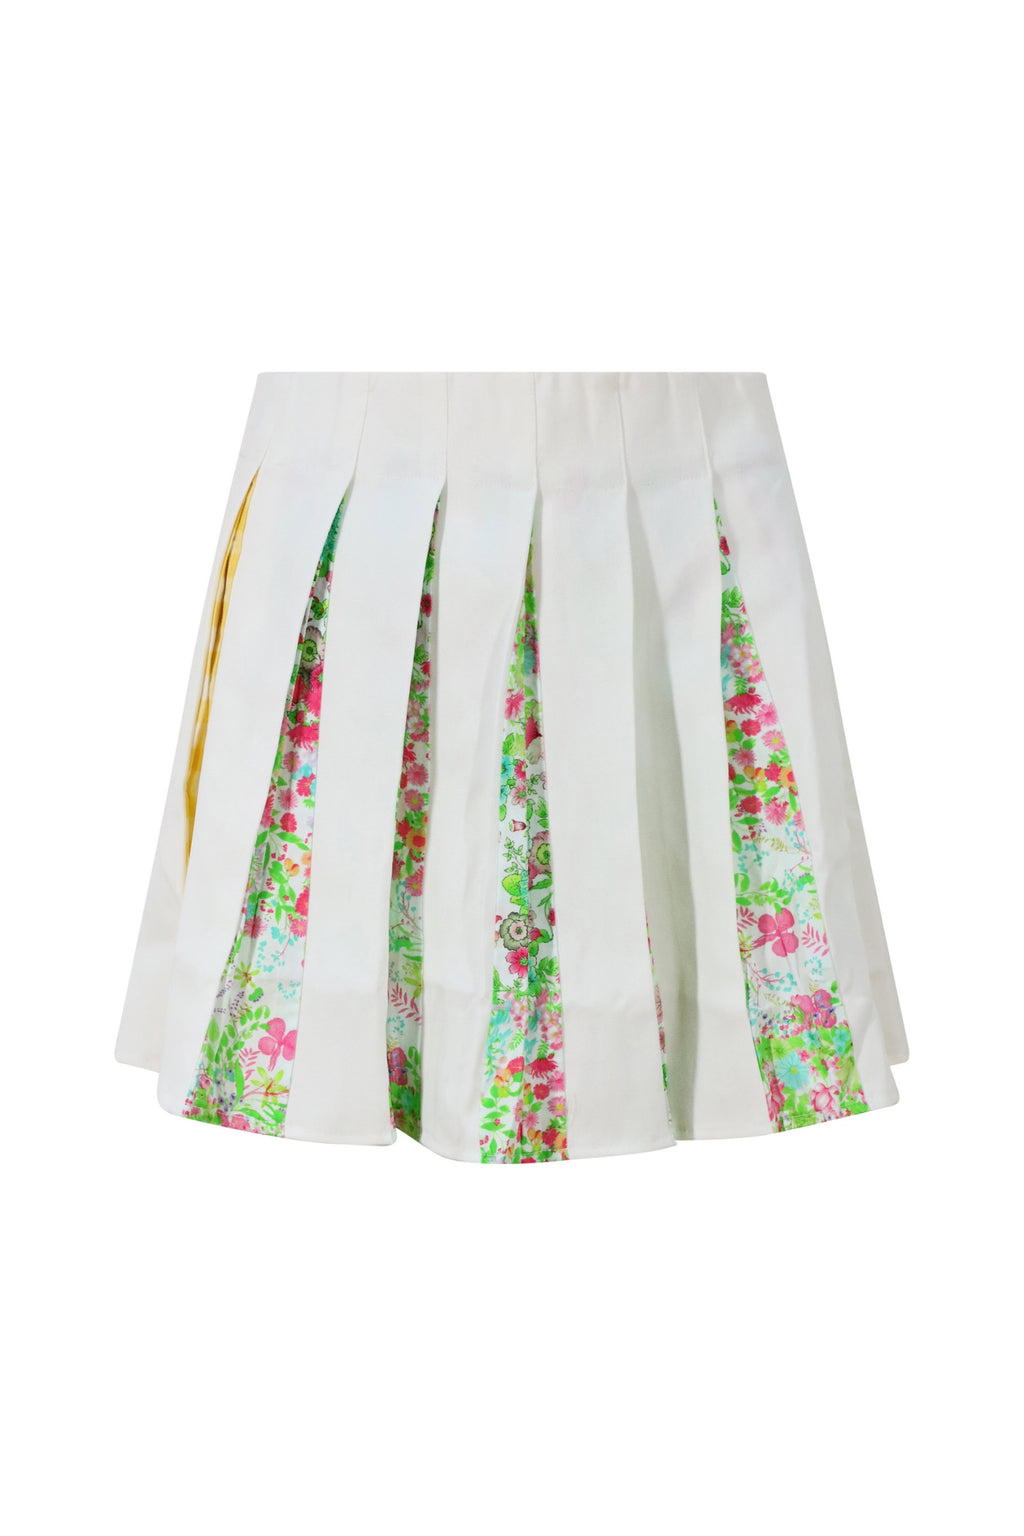 White Floral Tennis Skirt